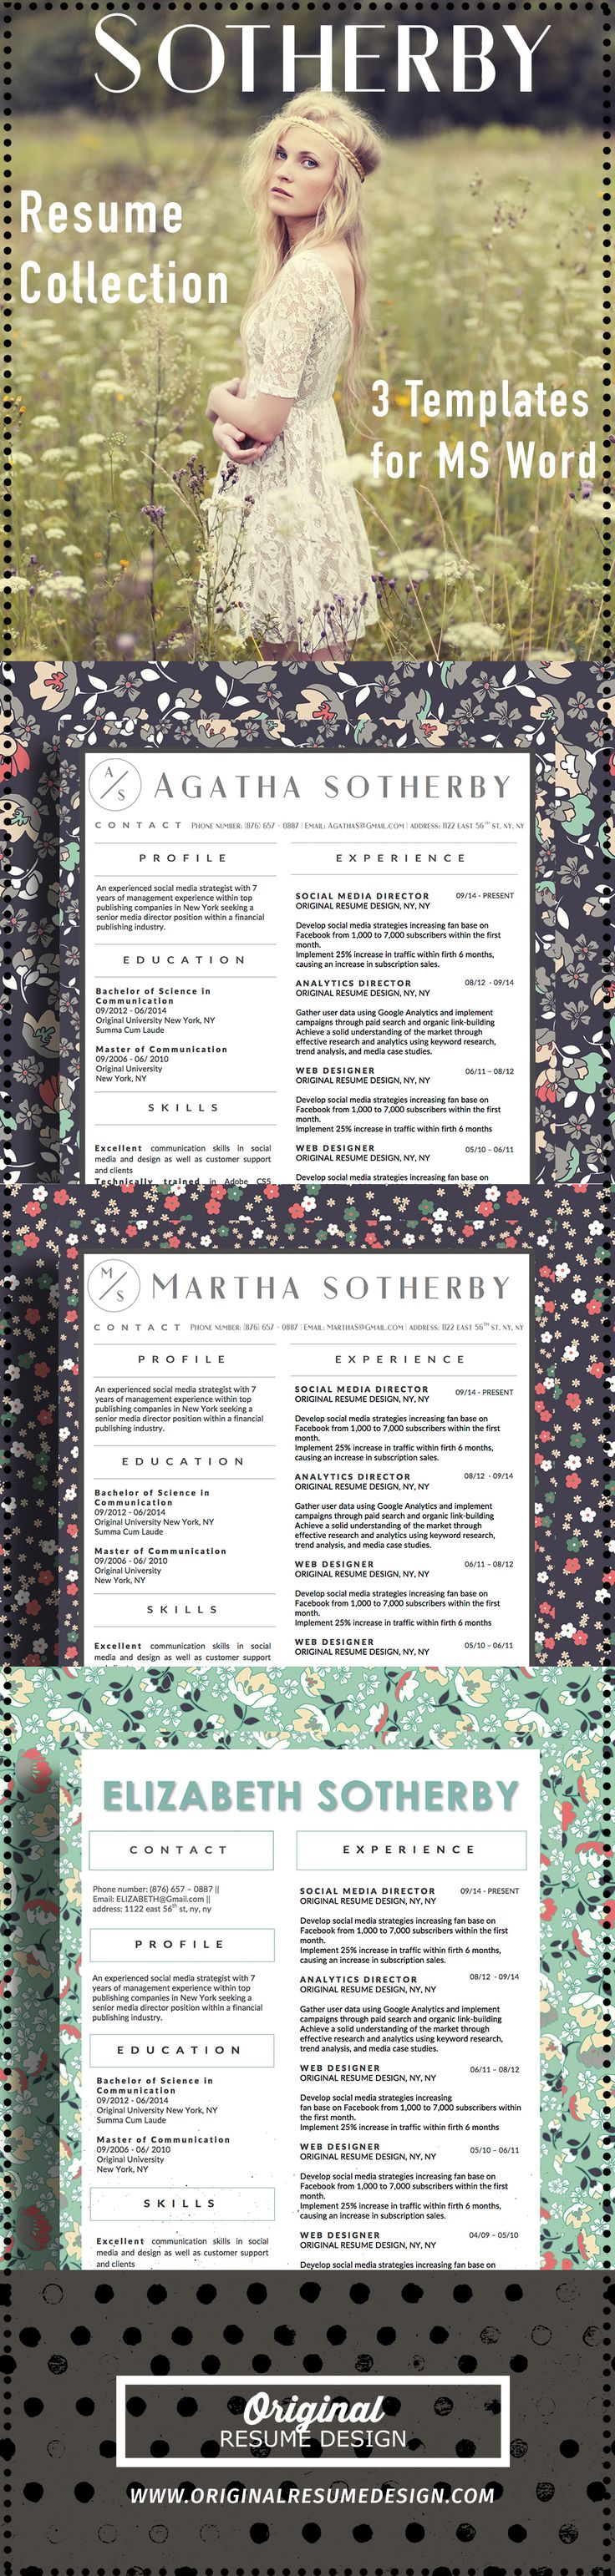 best images about resume creative resume modern 3 beautiful resume designs by original resume design the sotherby collection